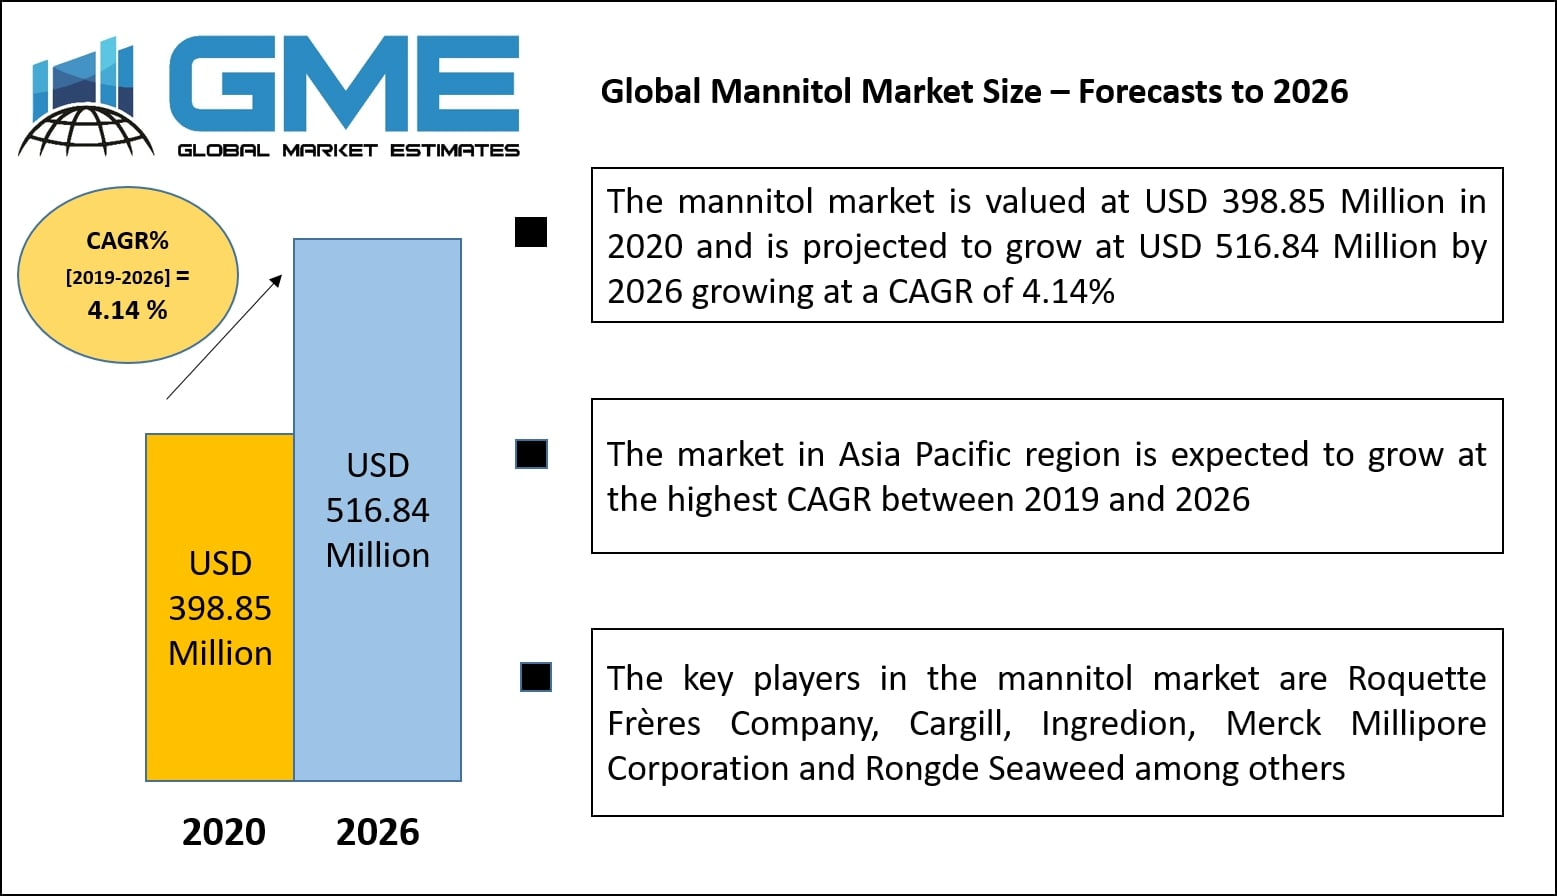 Global Mannitol Market Size – Forecasts to 2026